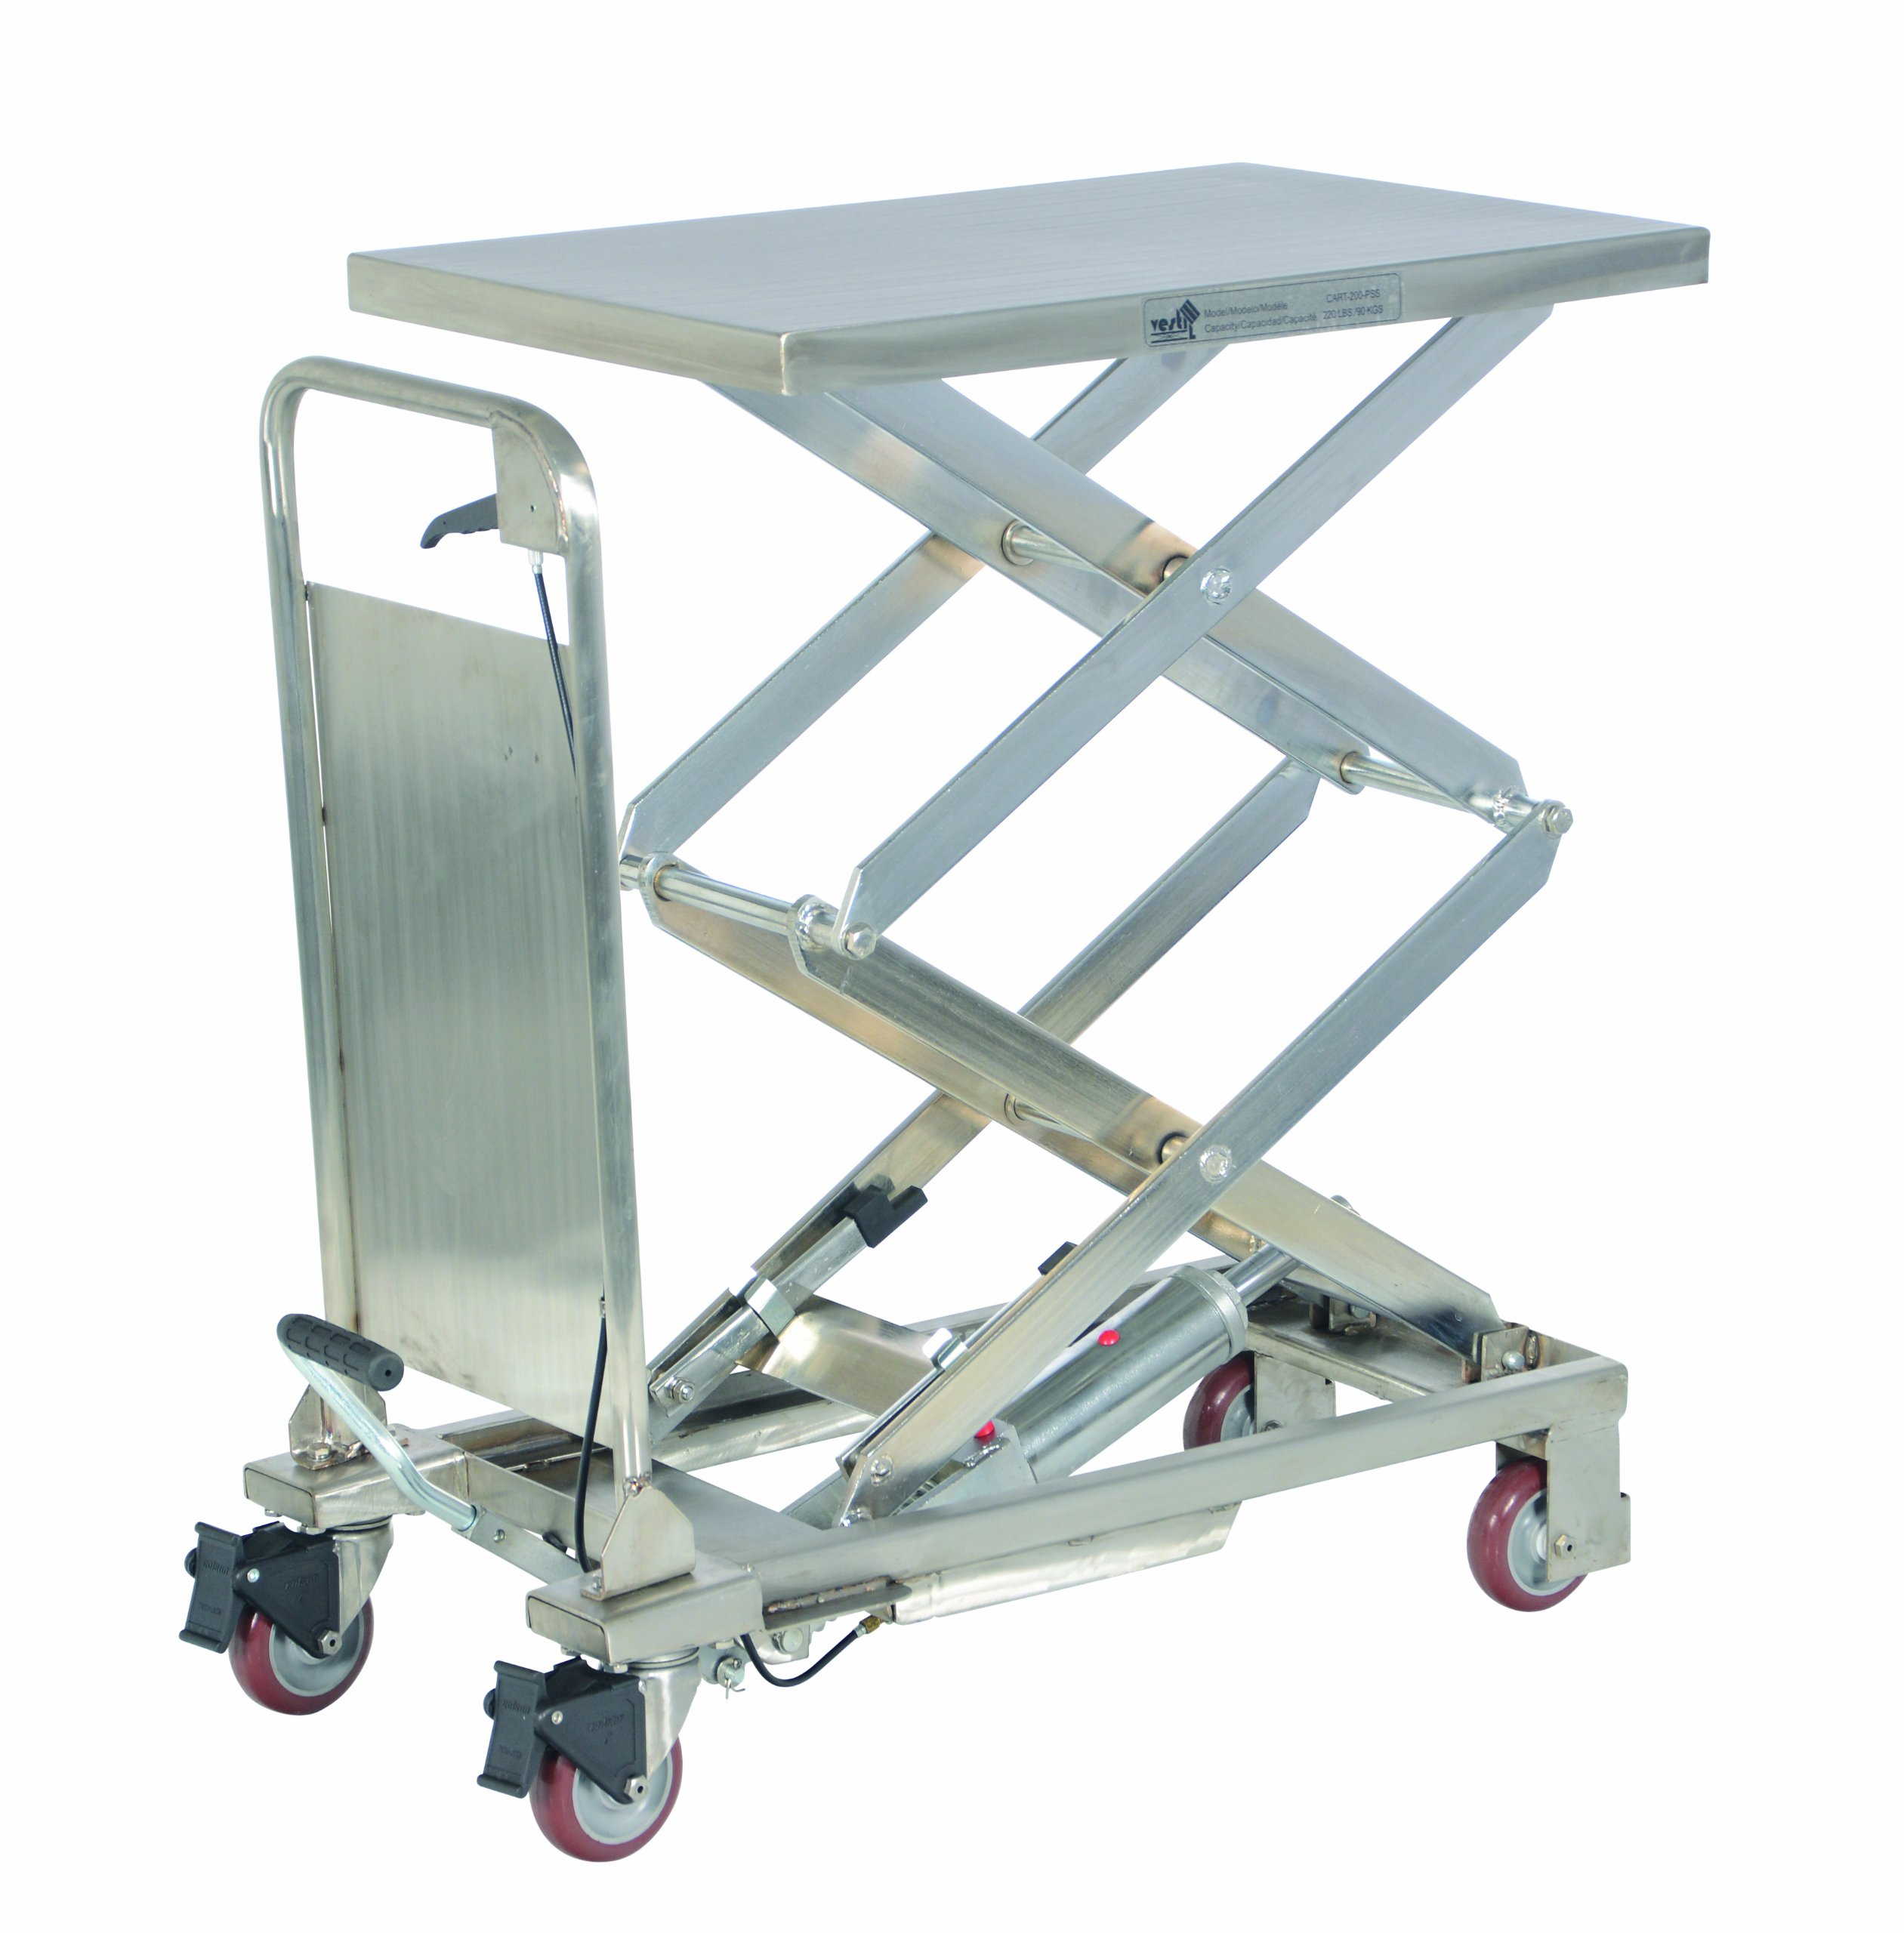 Vestil CART-200-D-PSS Partially Stainless Steel Hydraulic Elevating Cart, 220 lb. Capacity, 27-1/2'' x 17-1/2'' Platform